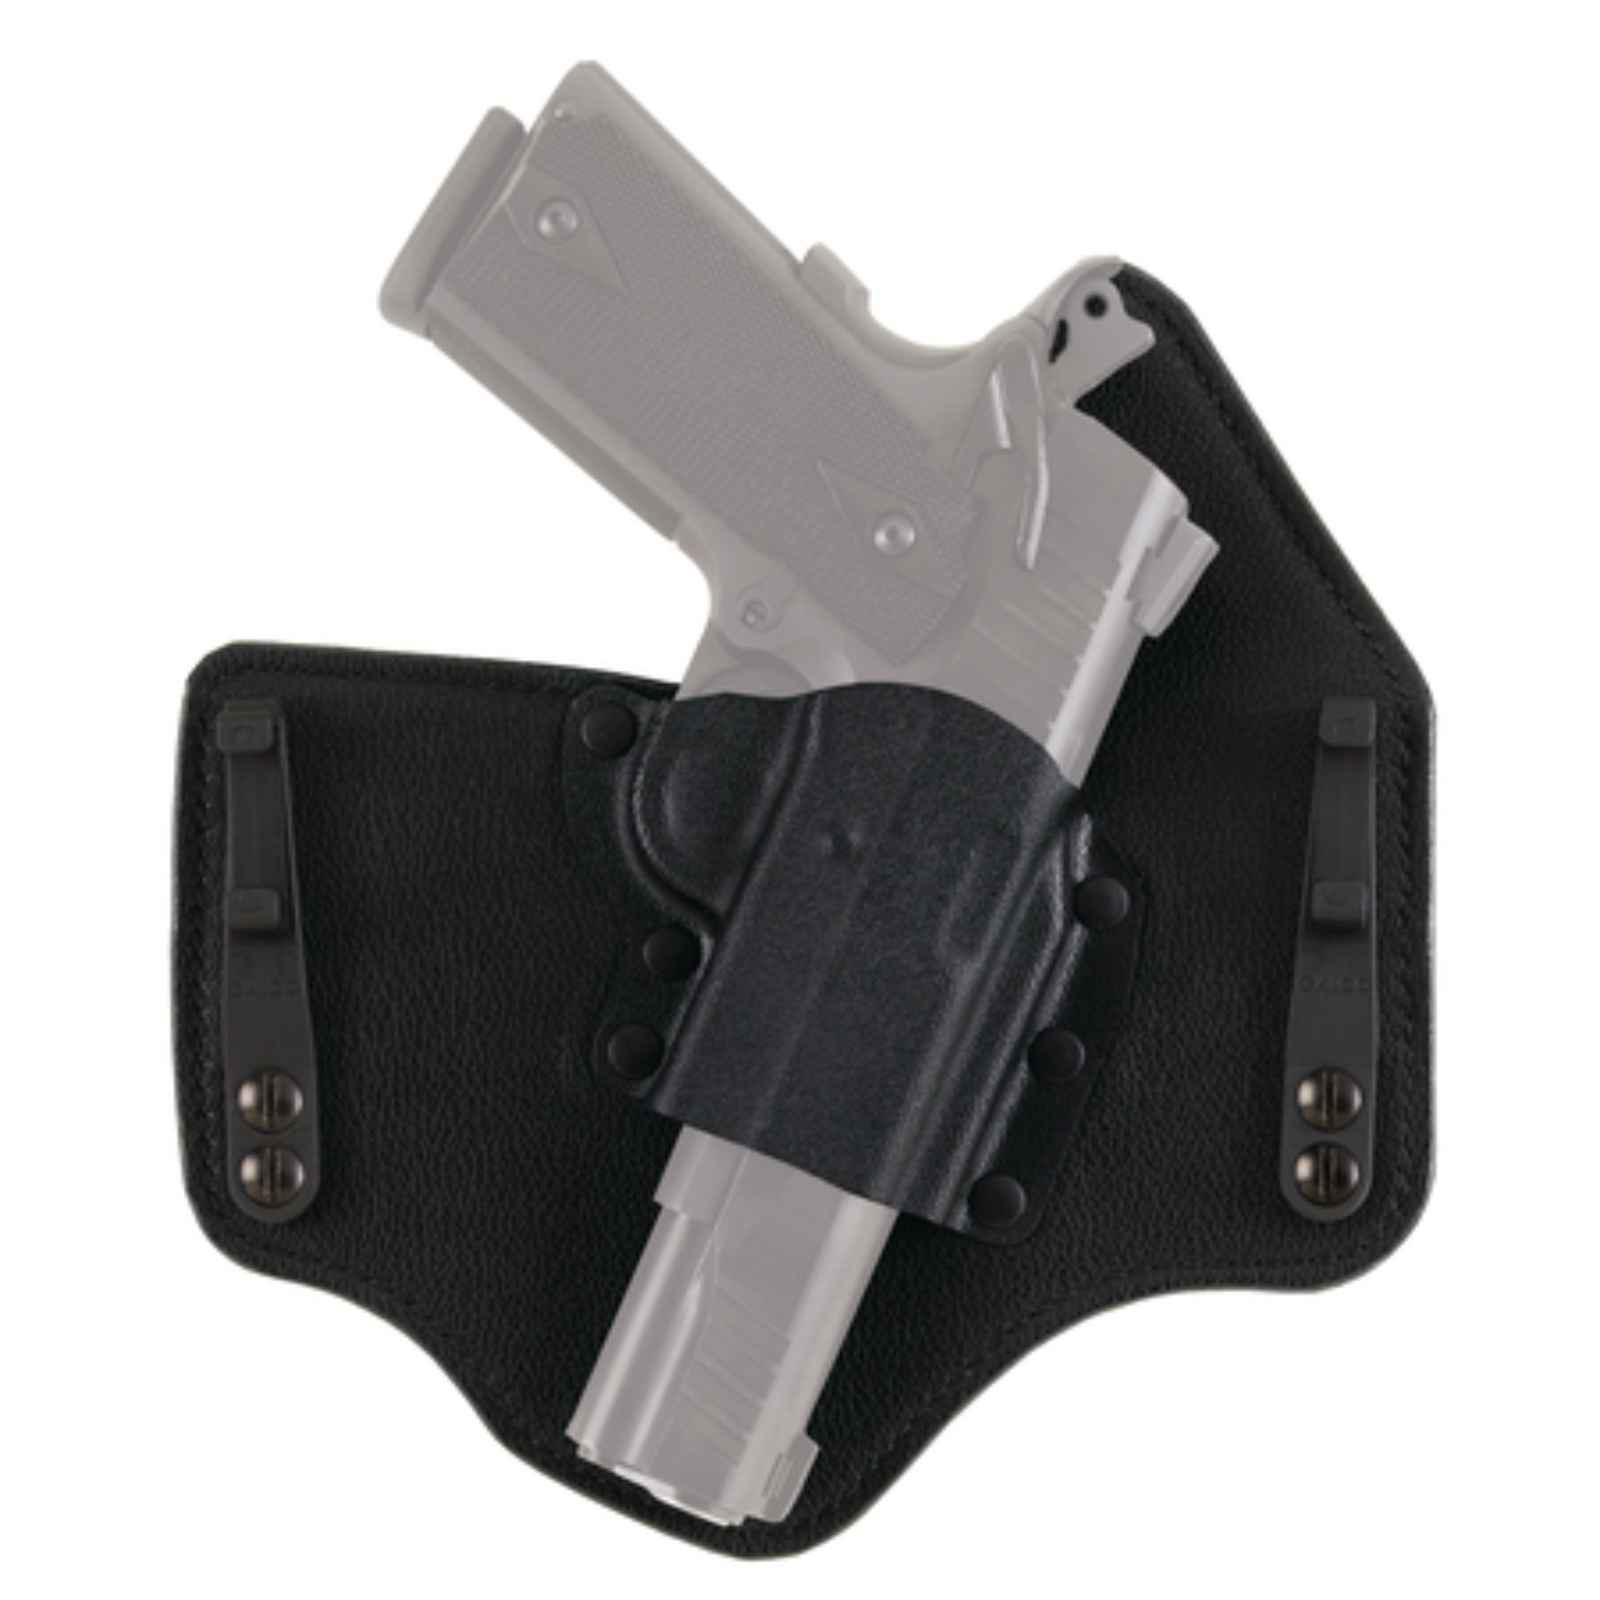 Galco Kingtuk IWB Holster by Galco